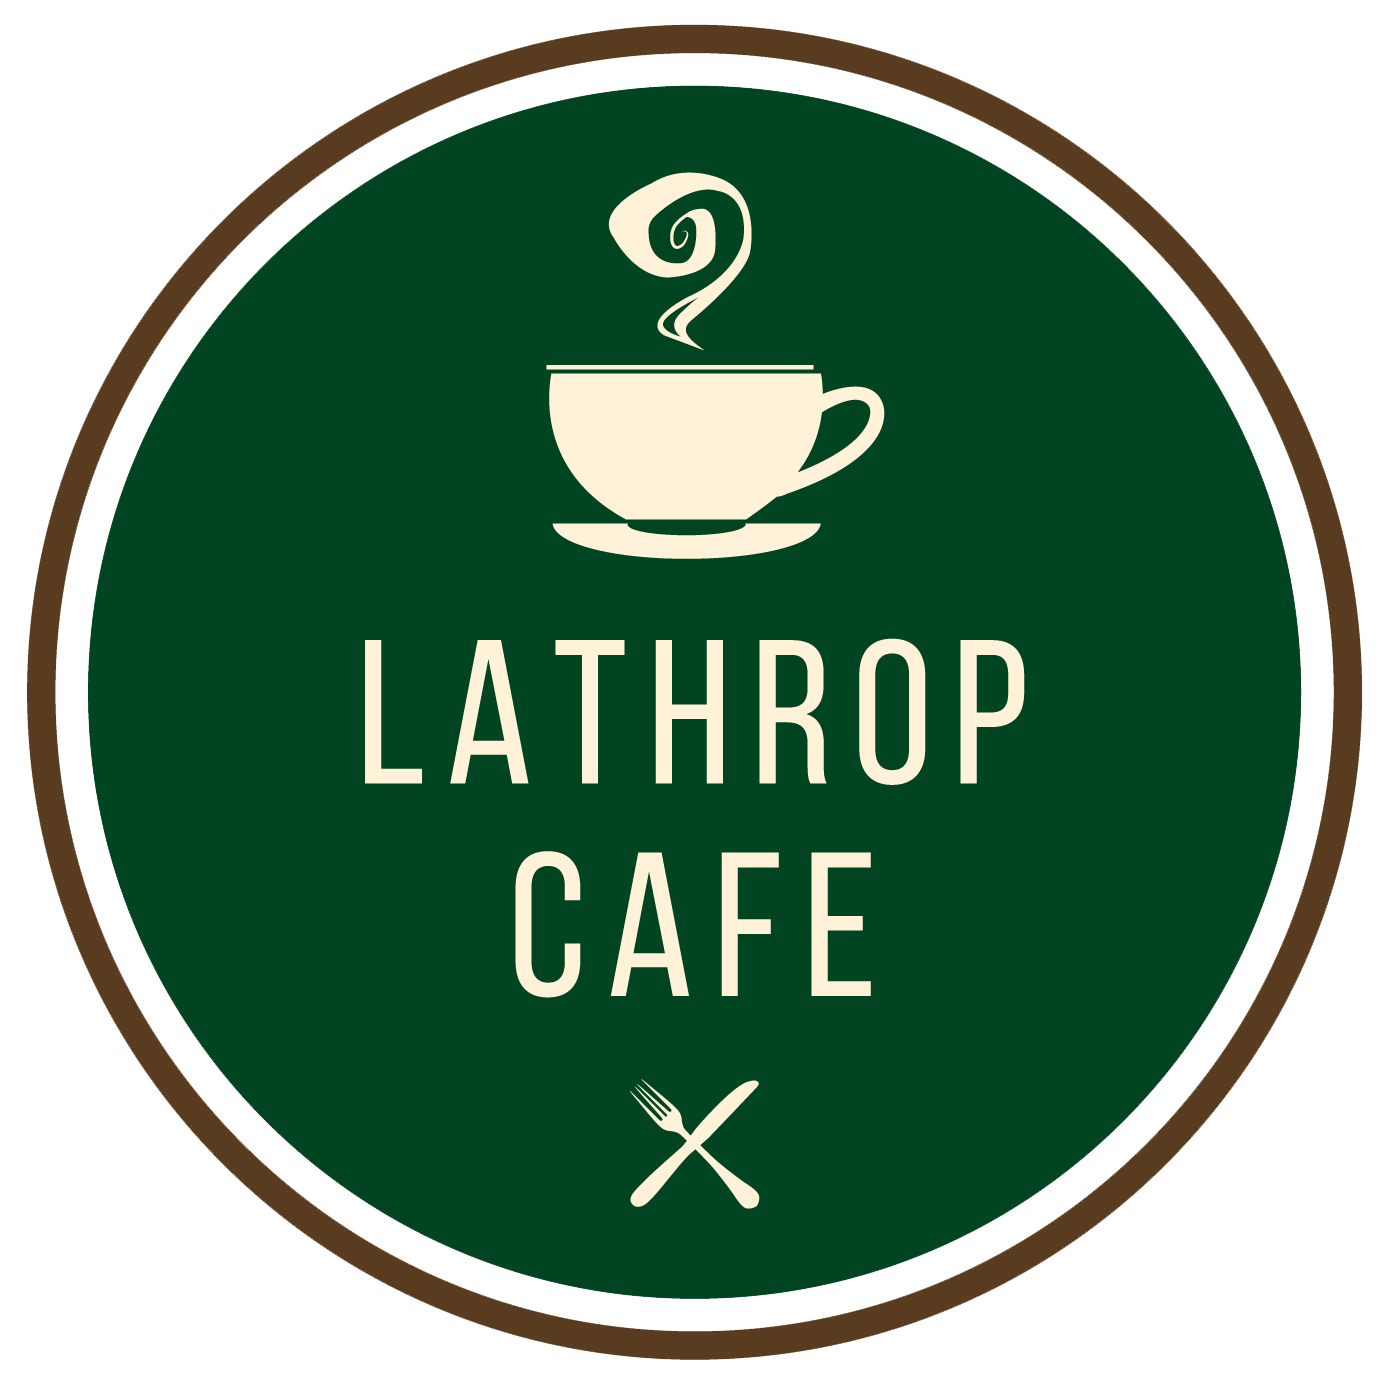 Lathrop Cafe